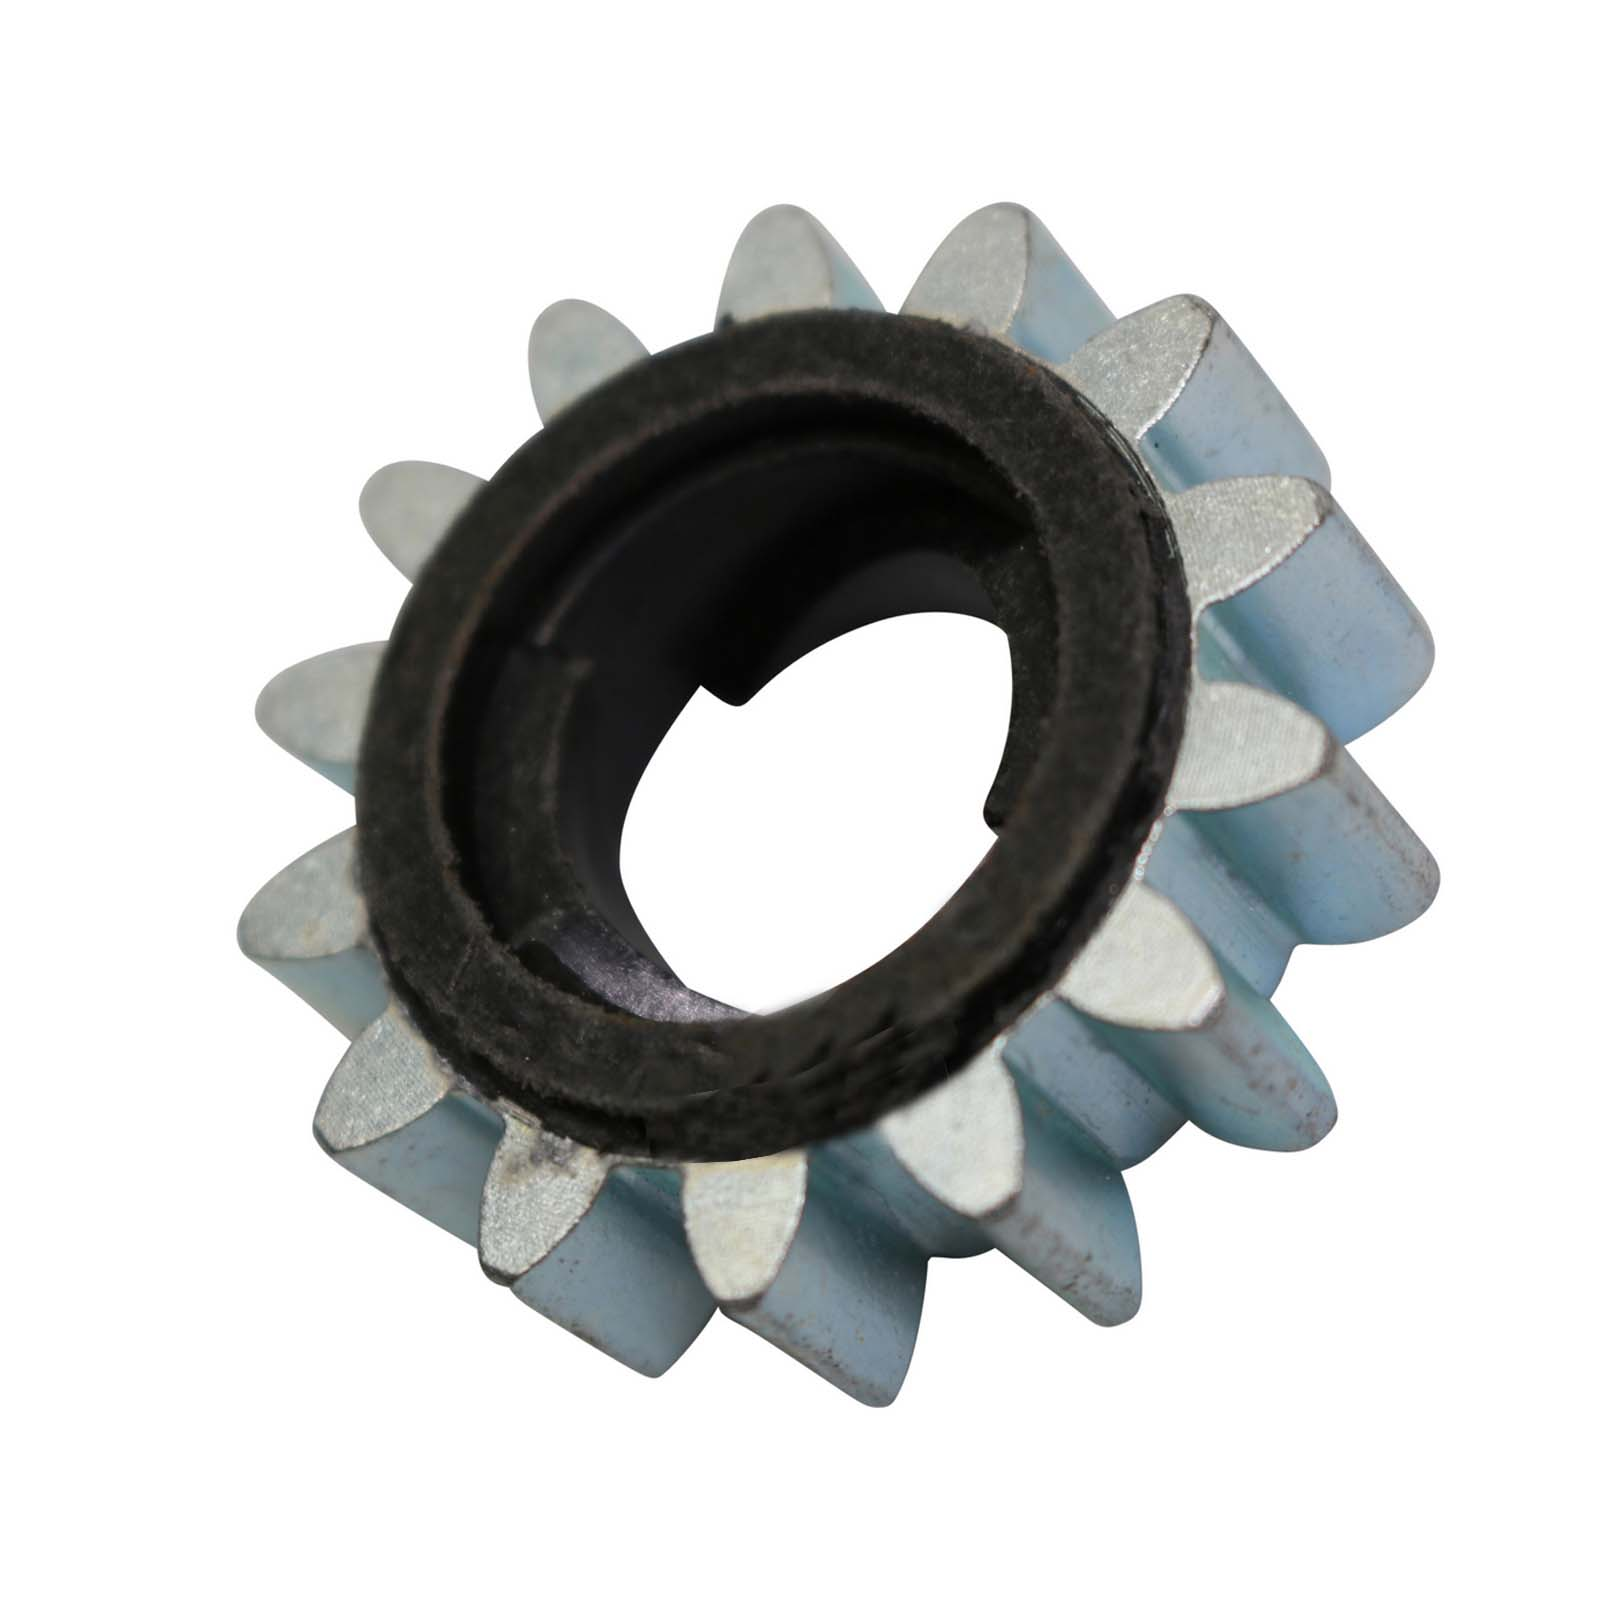 14 Teeth Steel Drive Gear for Briggs & Stratton Starter Motor Ride on Mower